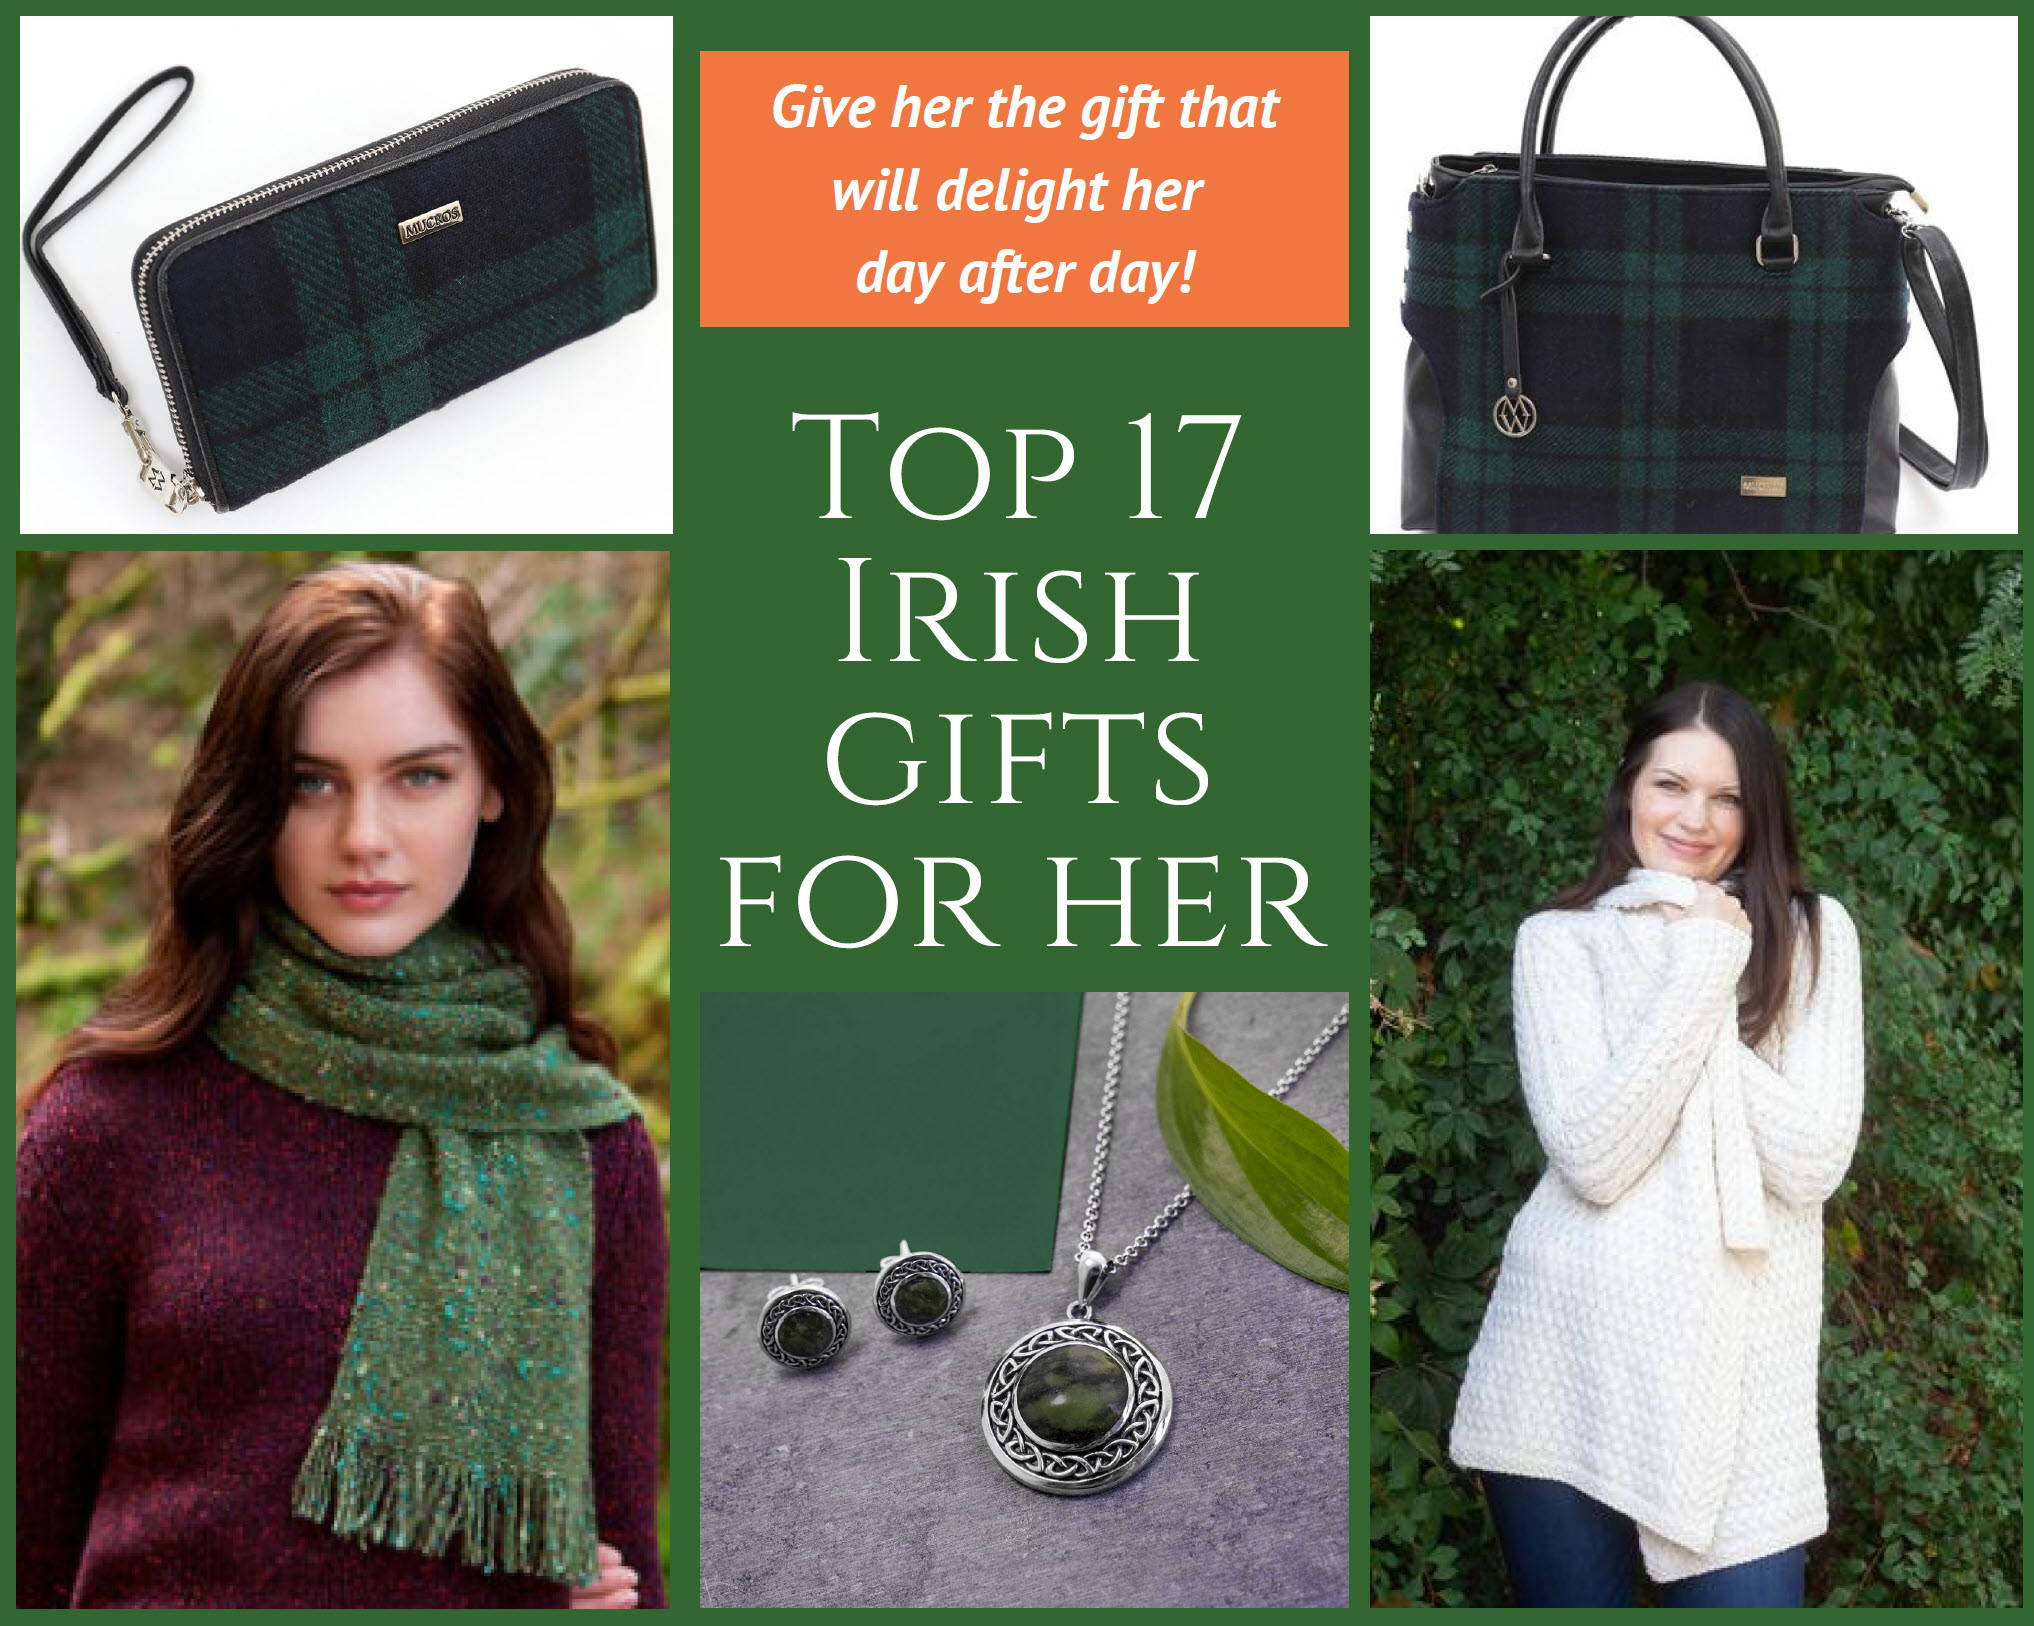 Top Irish Gifts for Her